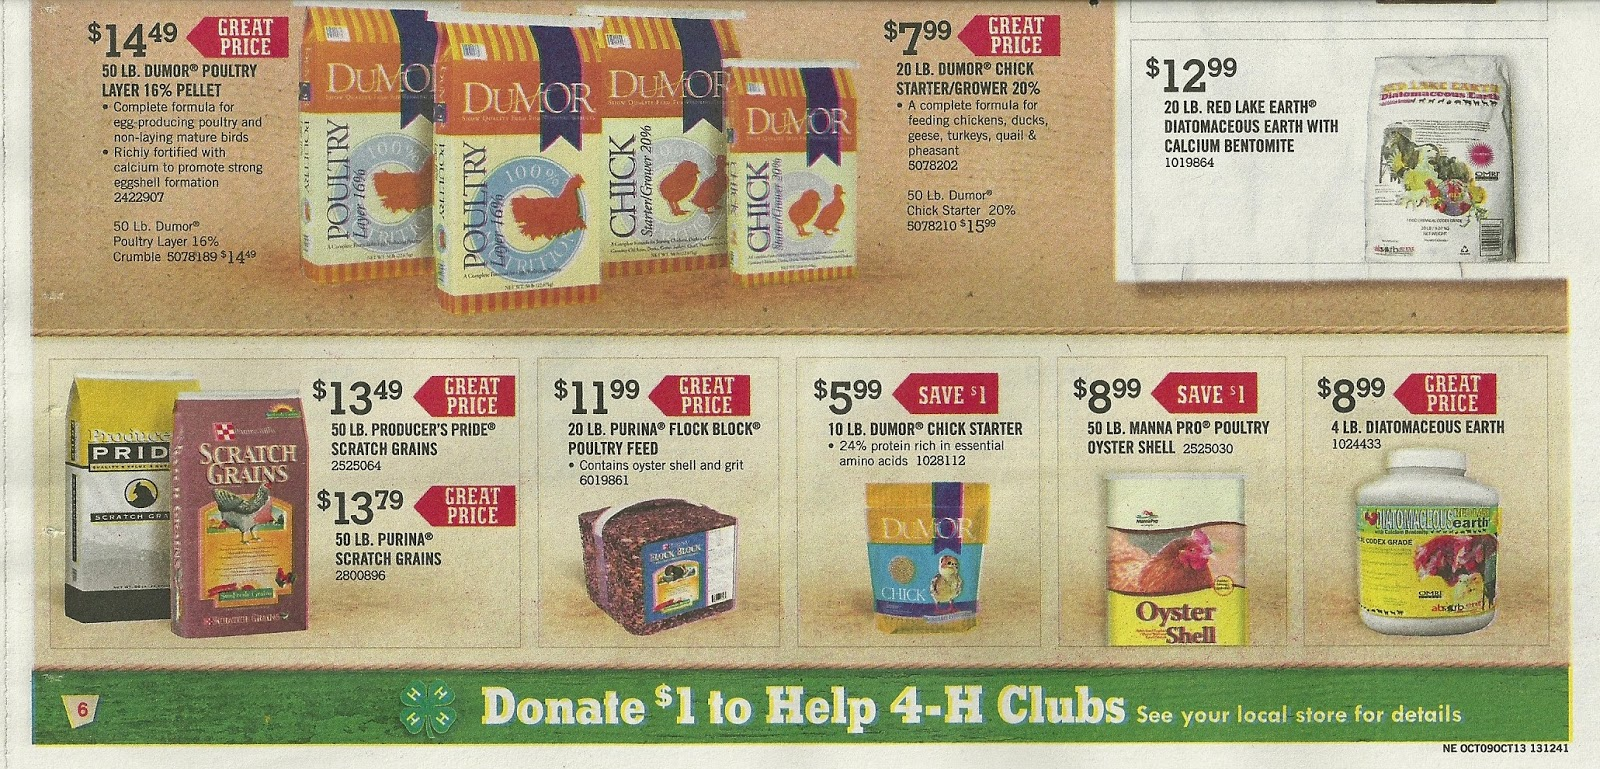 Tractor supply co vt ad scan preview 10 9 10 13